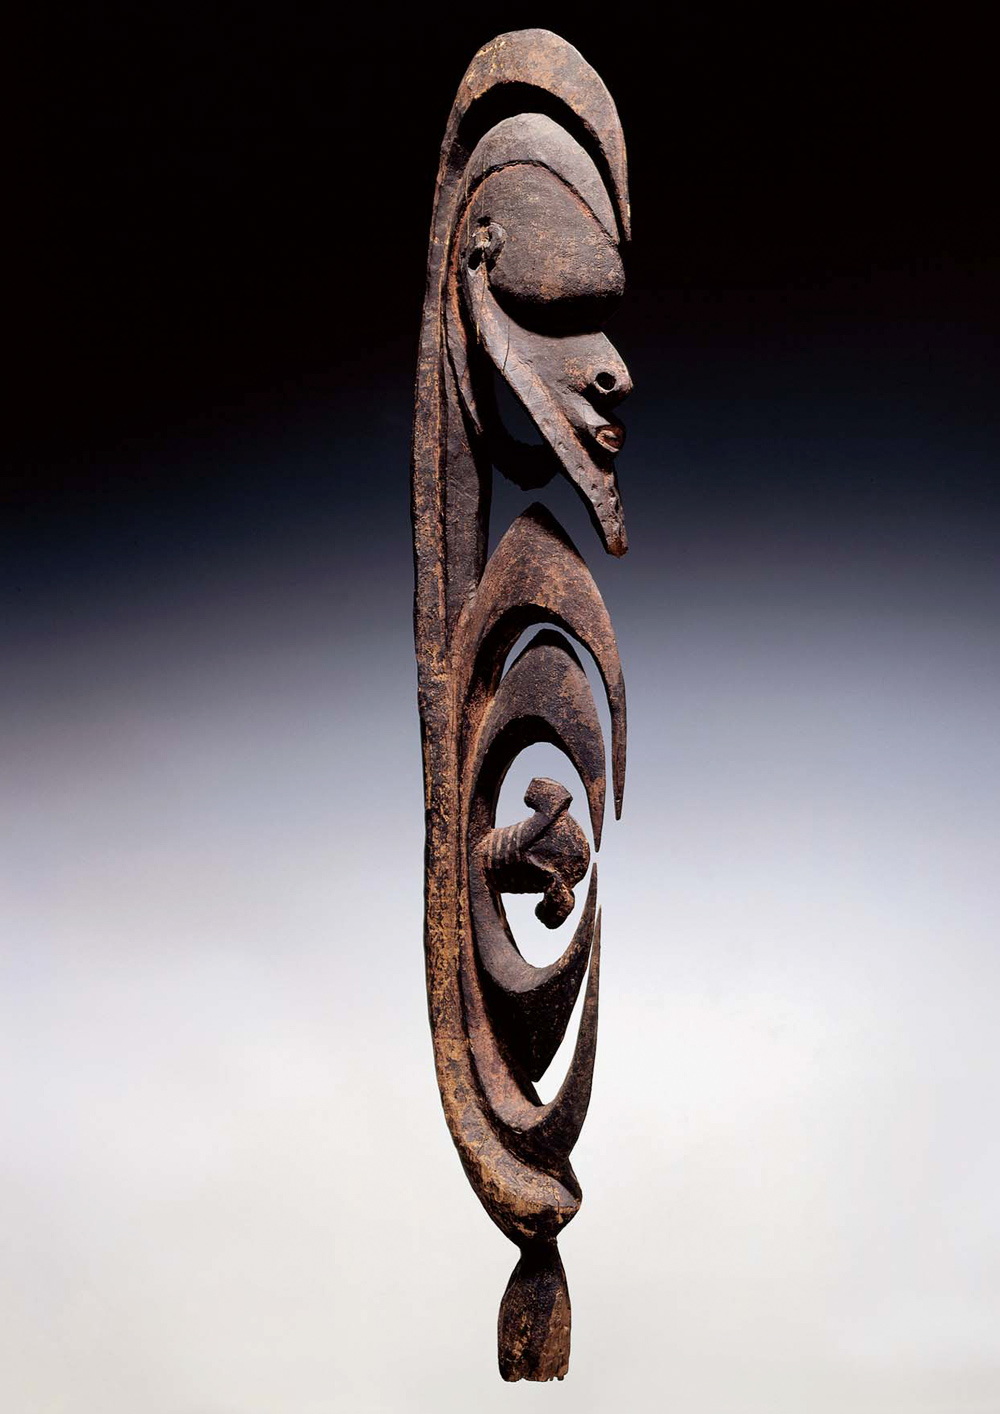 Elegance of Menace Aesthetics of New Guinea Art